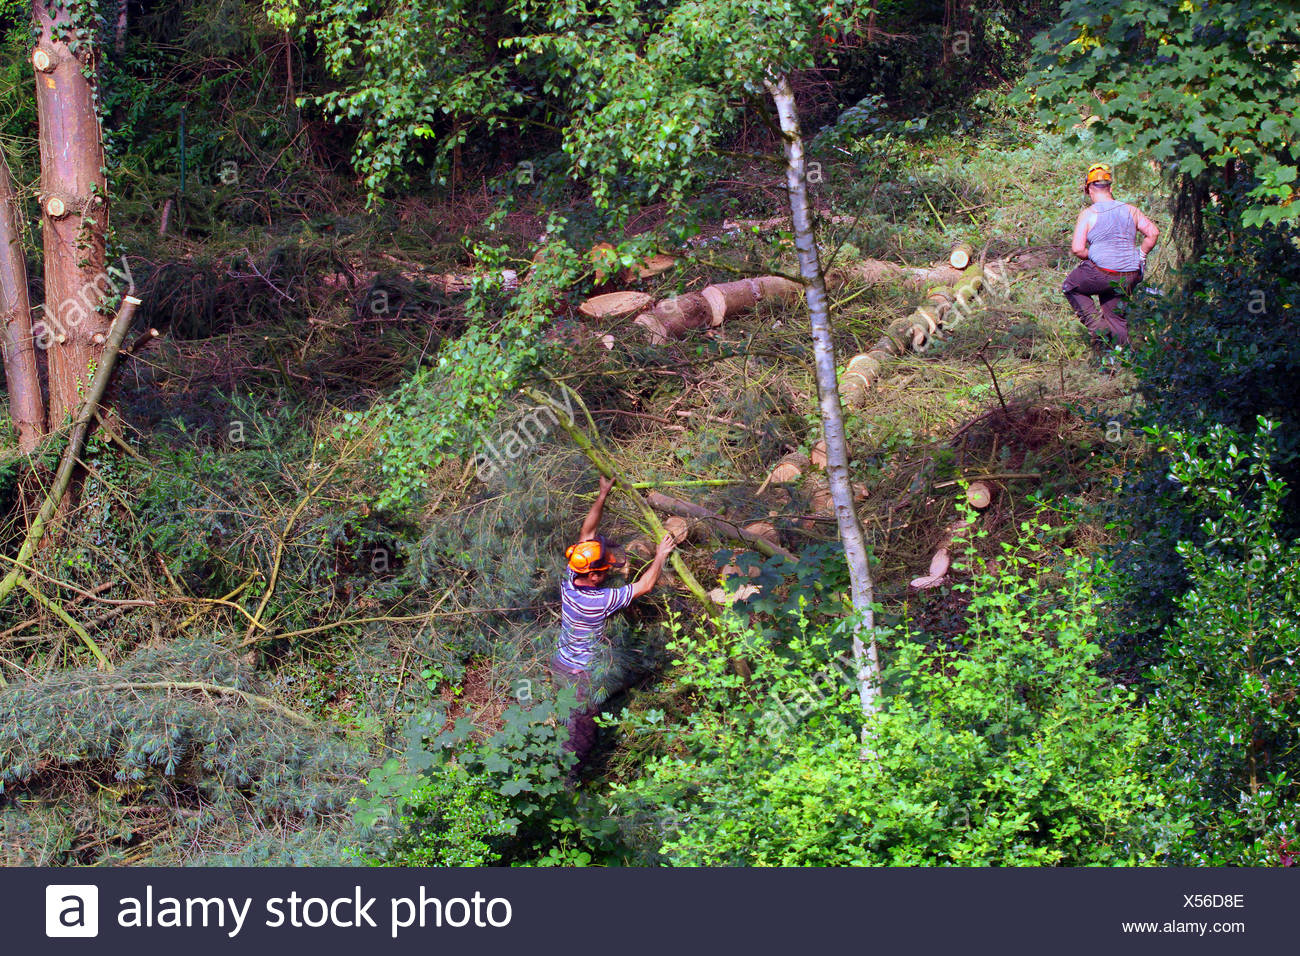 lumberjacks felling trees, Germany Stock Photo